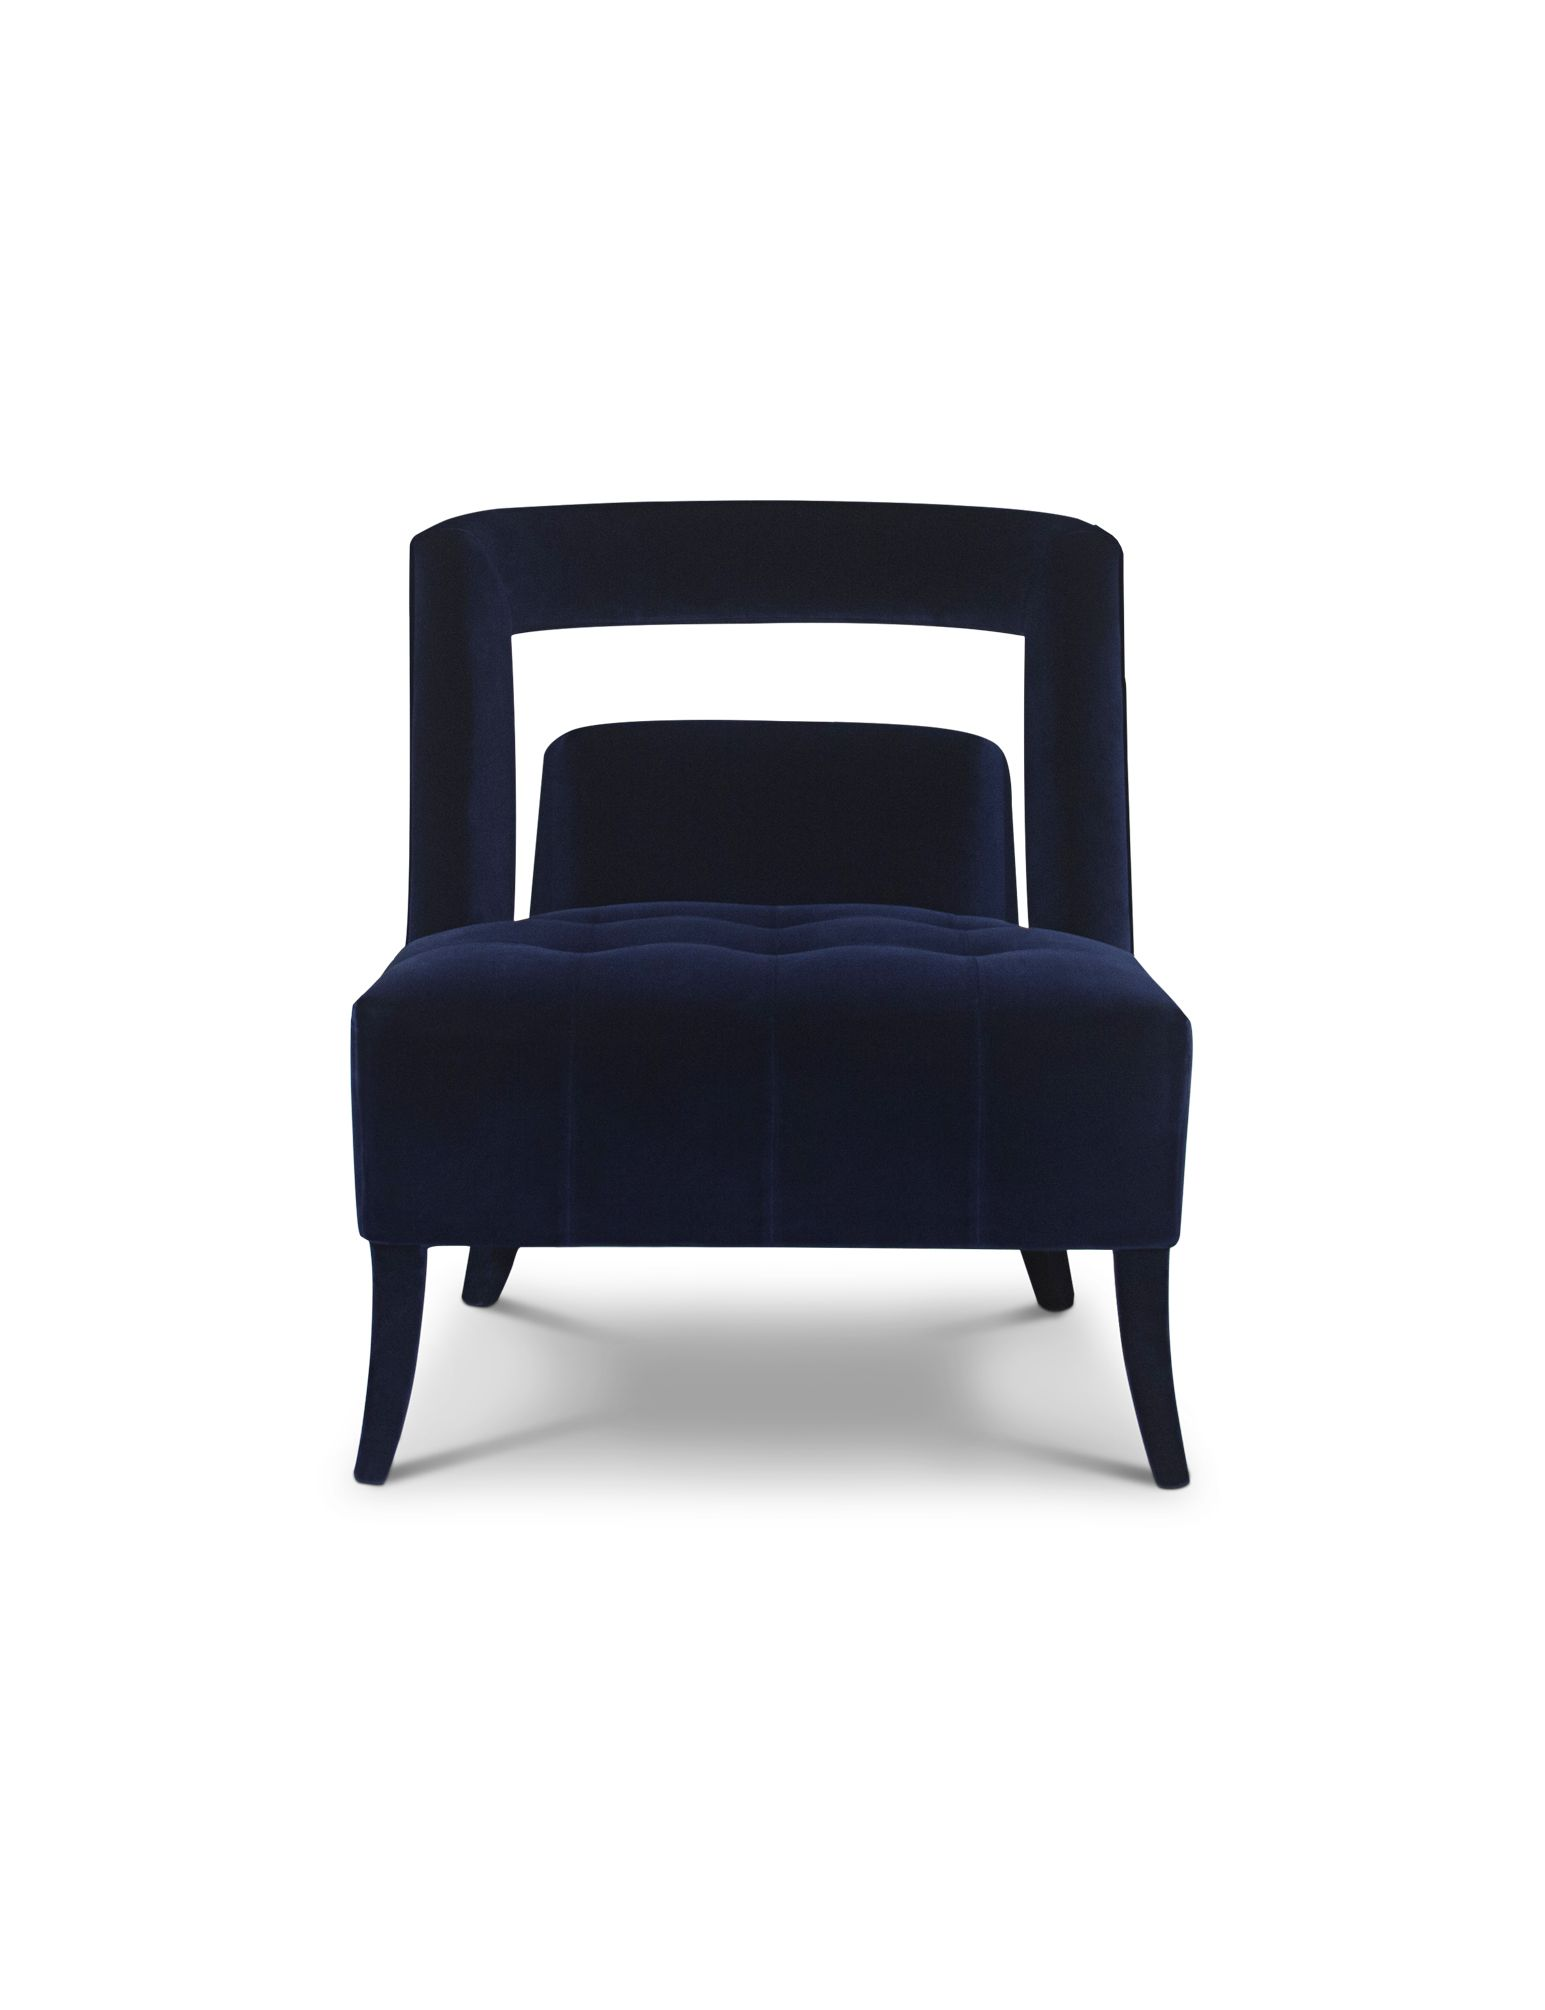 Naj is a classic modern armchair with straight lines fully ...